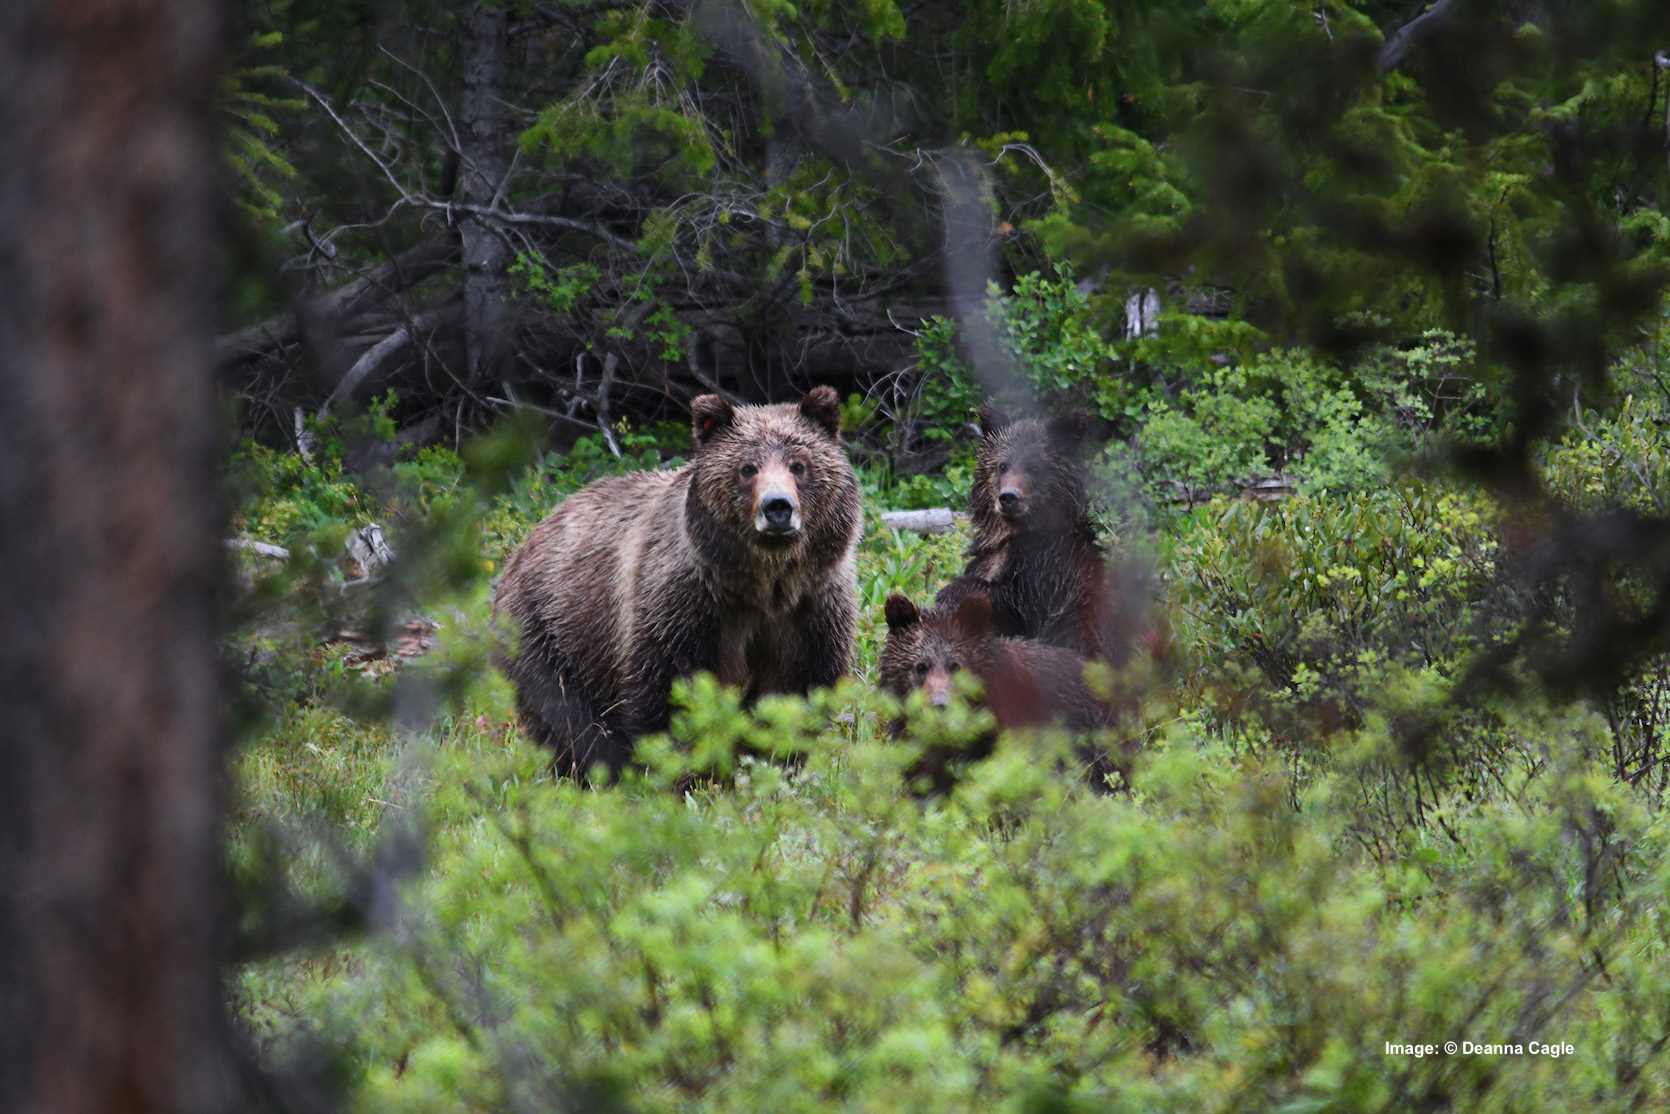 "ANOTHER GRAND TETON NATIONAL PARK ROCK-STAR, ""Blondie,"" GRIZZLY #793, AND HER CUBS PEAK THROUGH THE TREES AT THE PHOTOGRAPHER. Image:  ©Deanna Cagle"